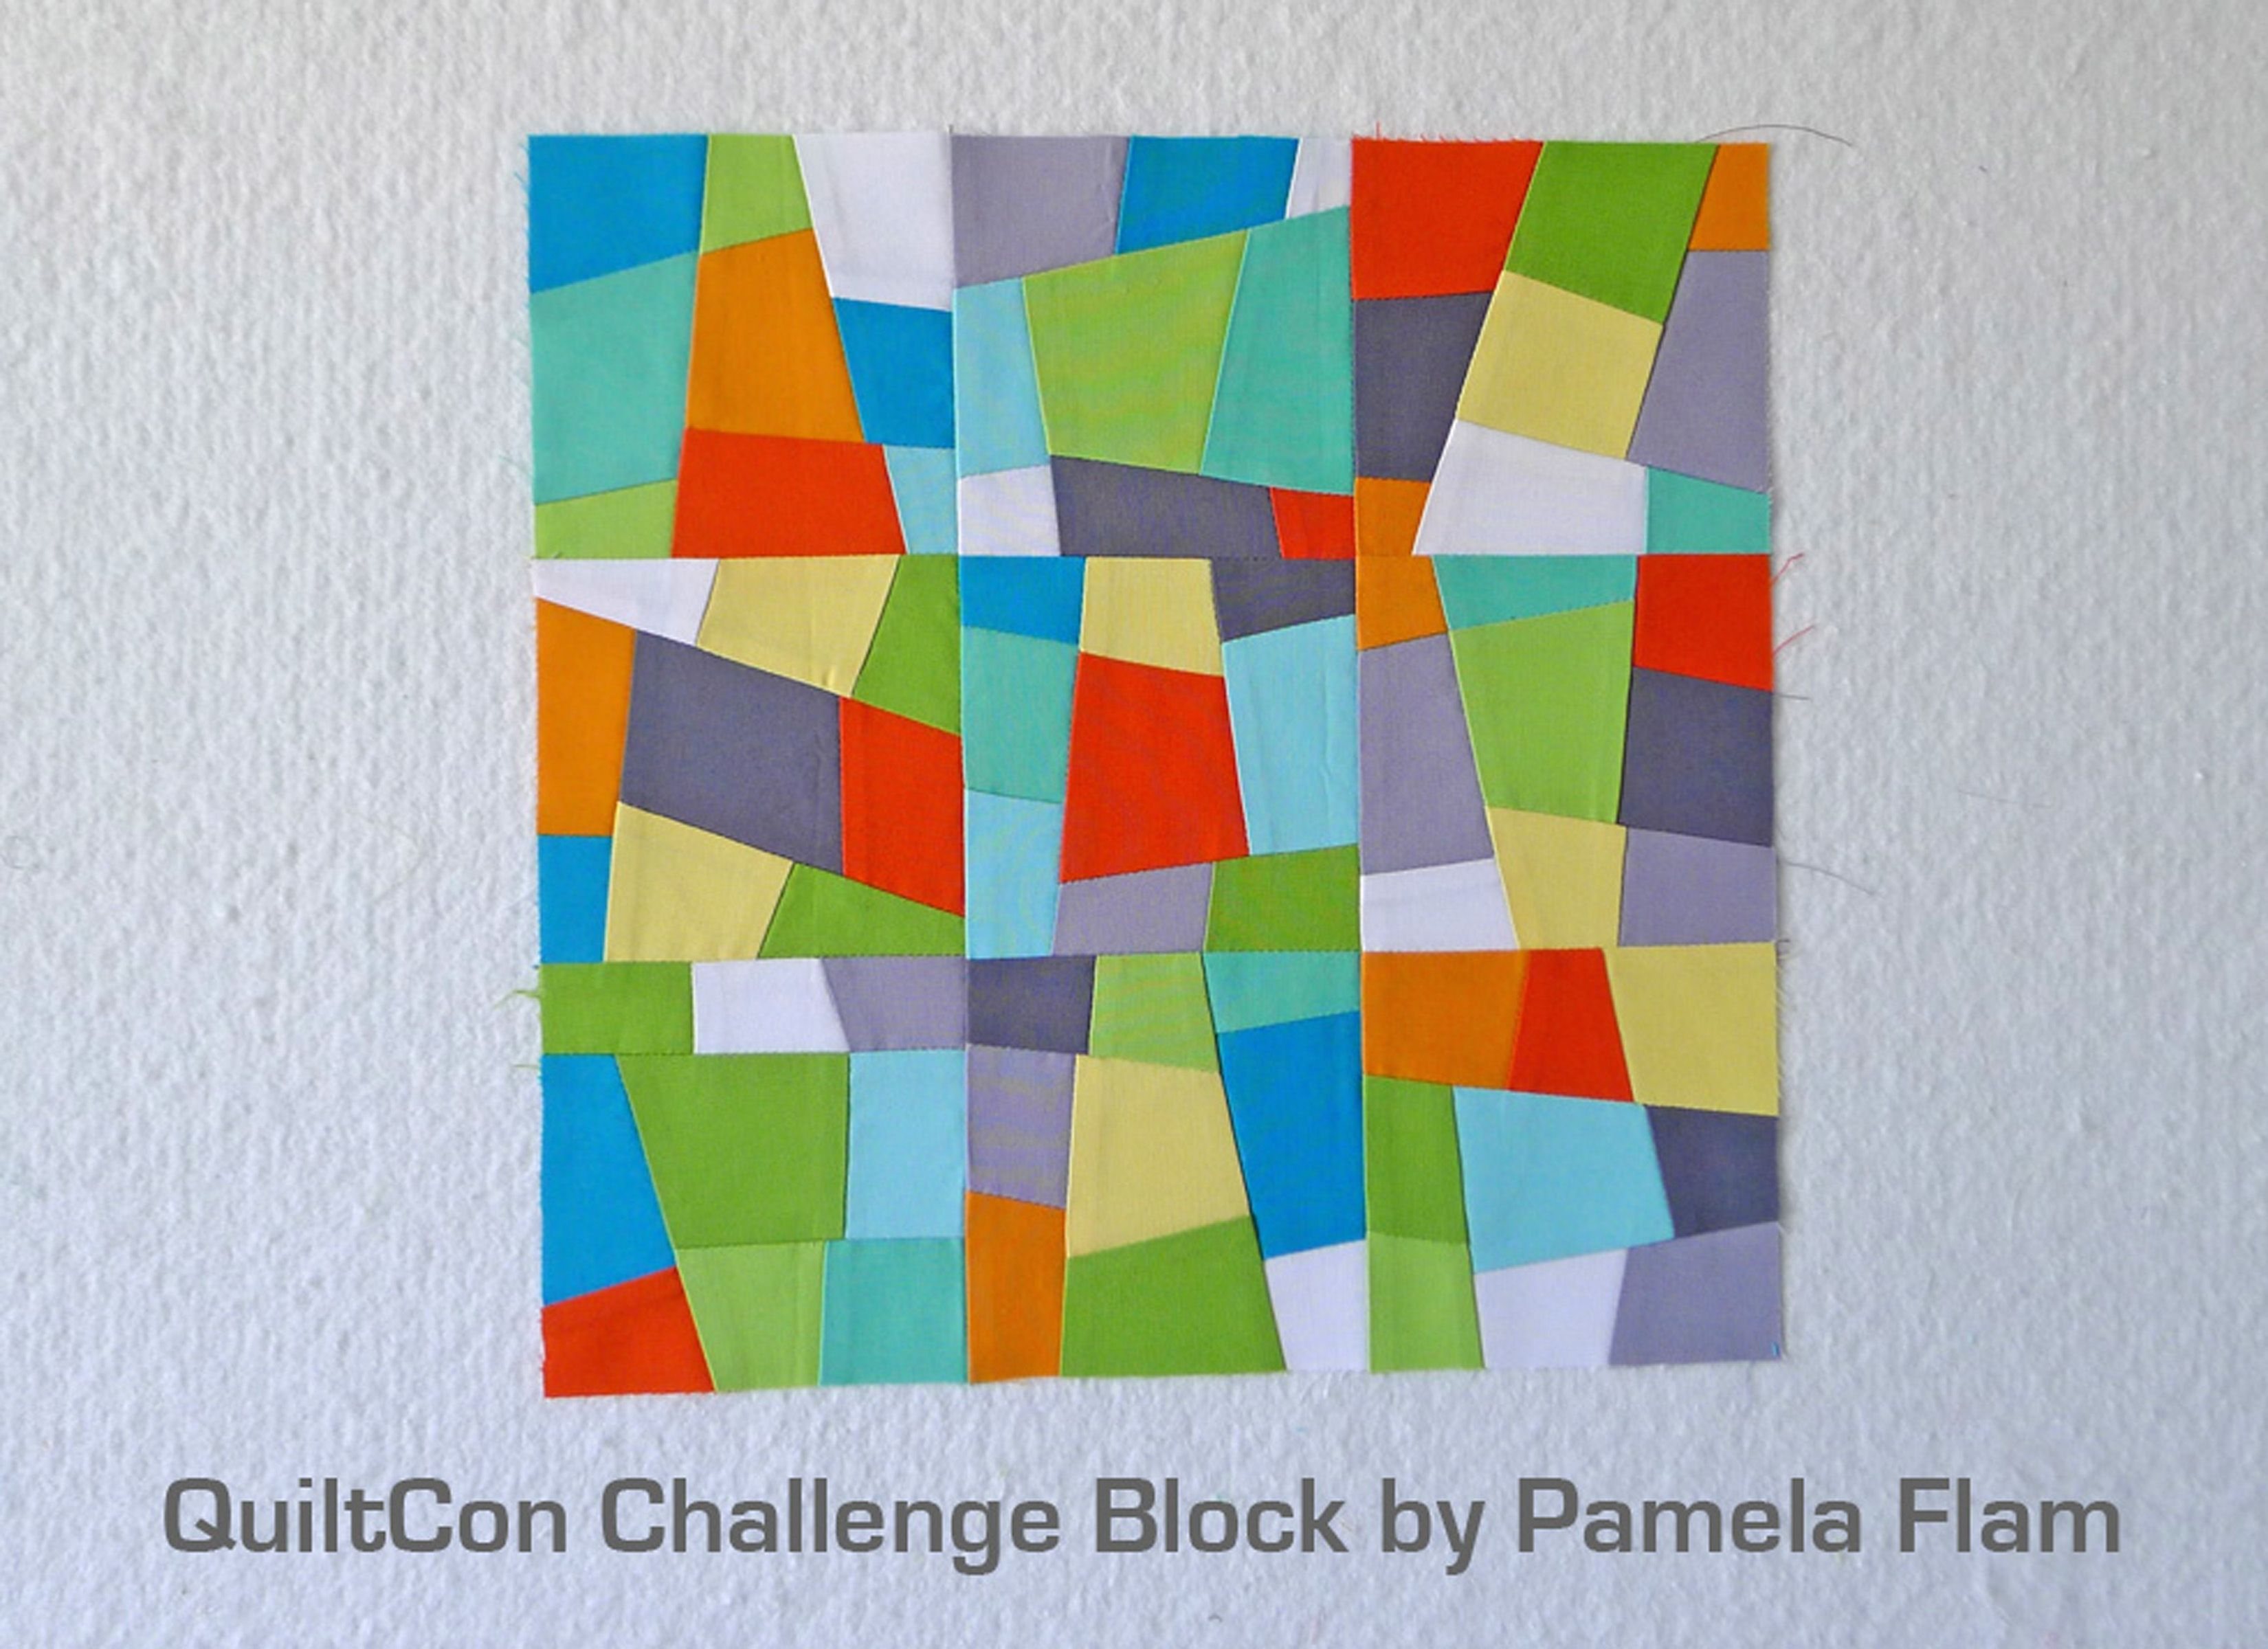 quiltcon - Google Search